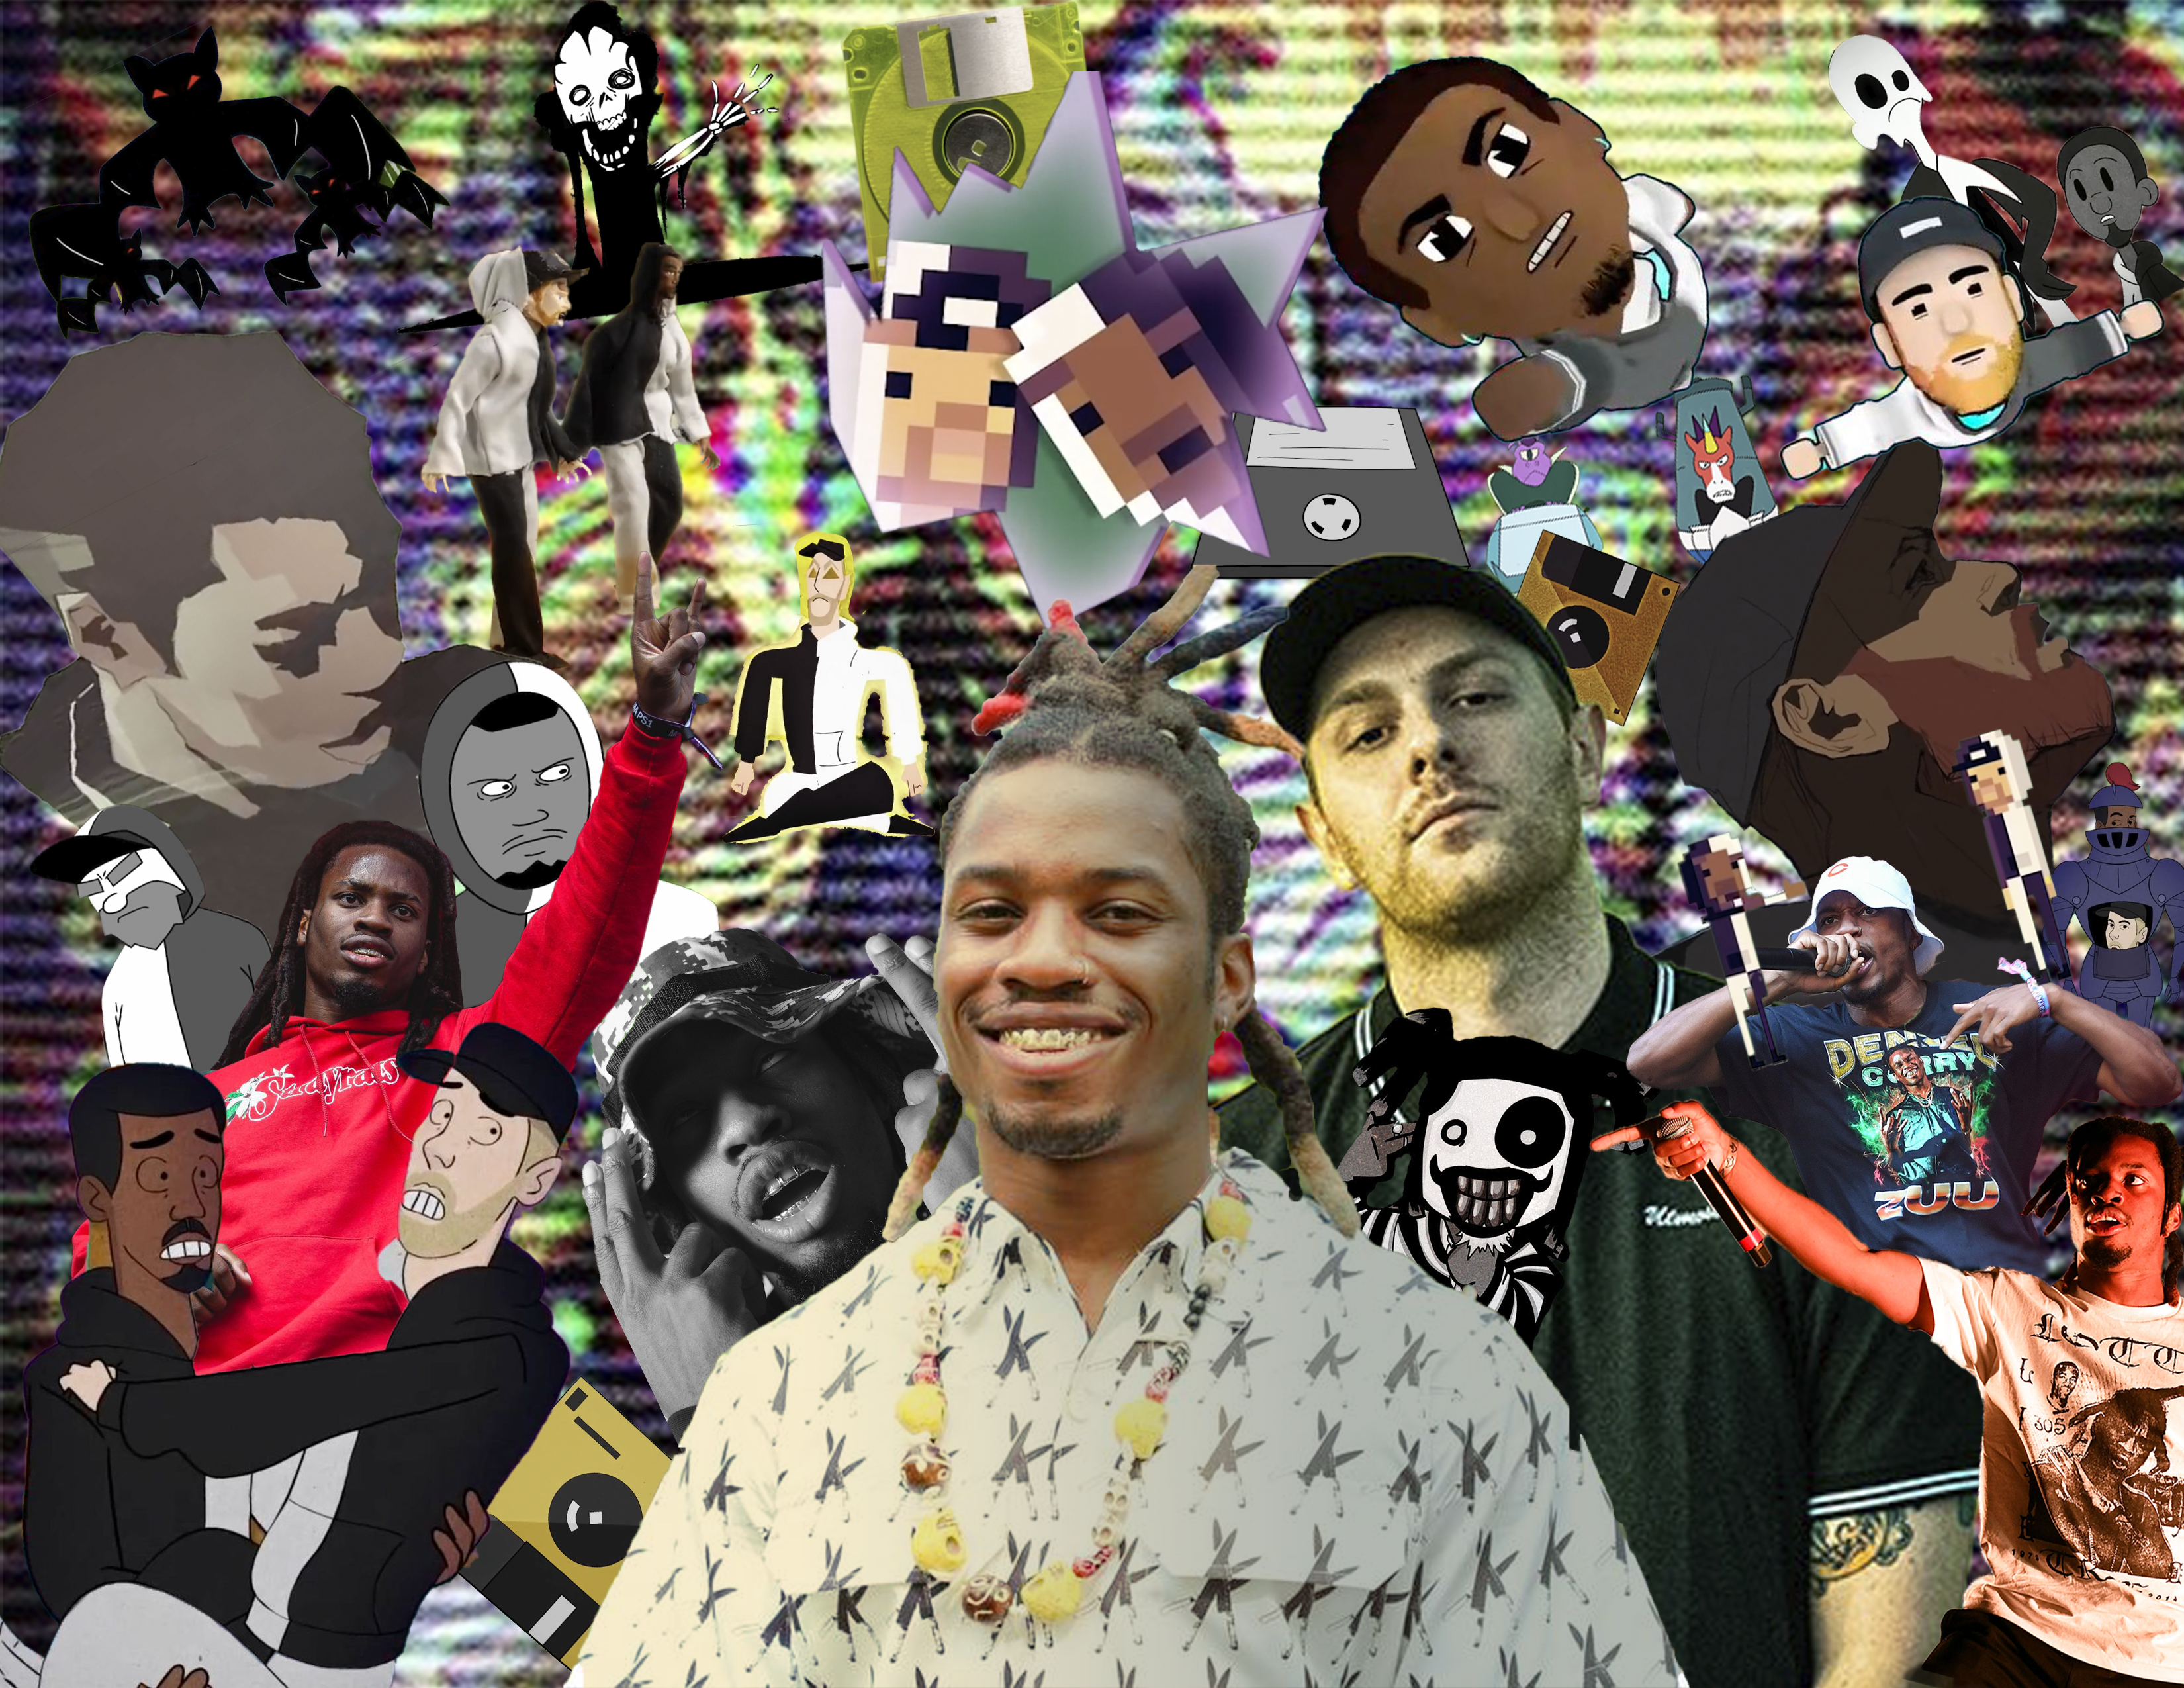 Hey Guys I M New Just Made This Unlocked And A Bit Random Zel Pics Collage As An Exam For My Photoshop Class W In 2020 Photoshop Class Photoshop Pics